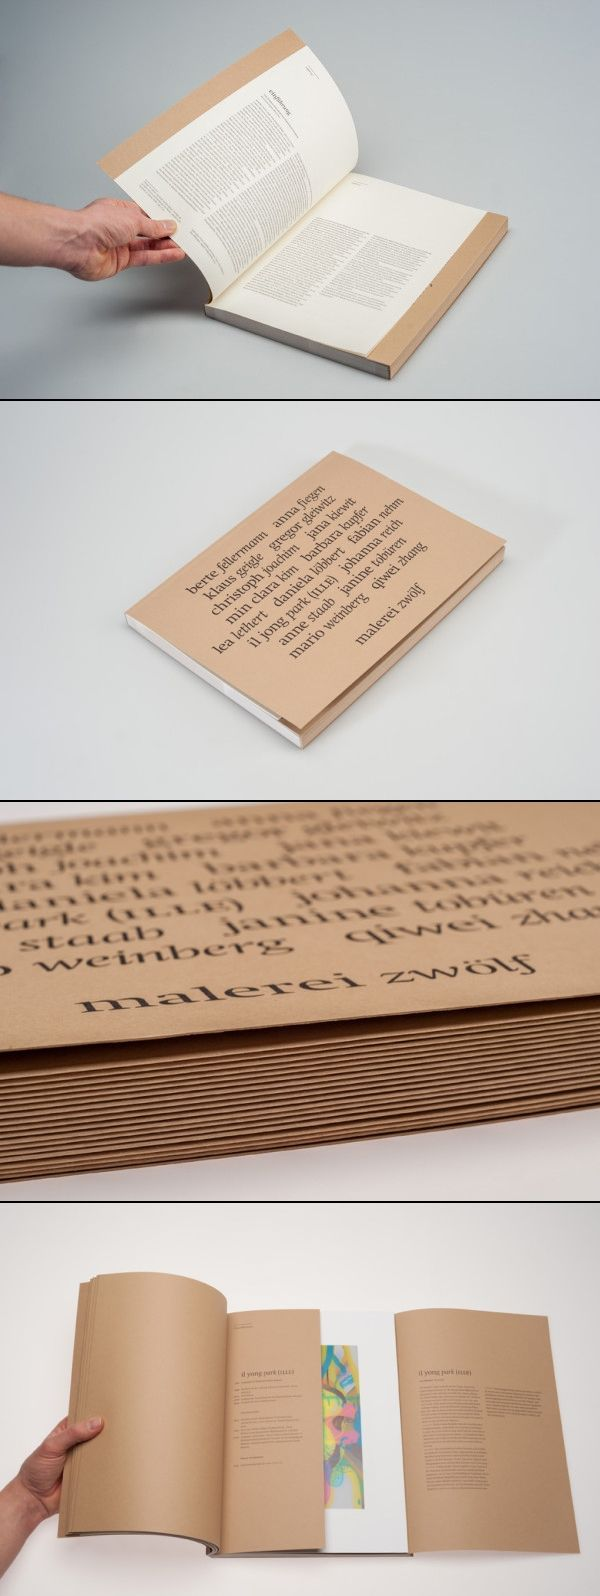 Cover is bygger + beautiful  finishing // like individual folders of paper content bound together